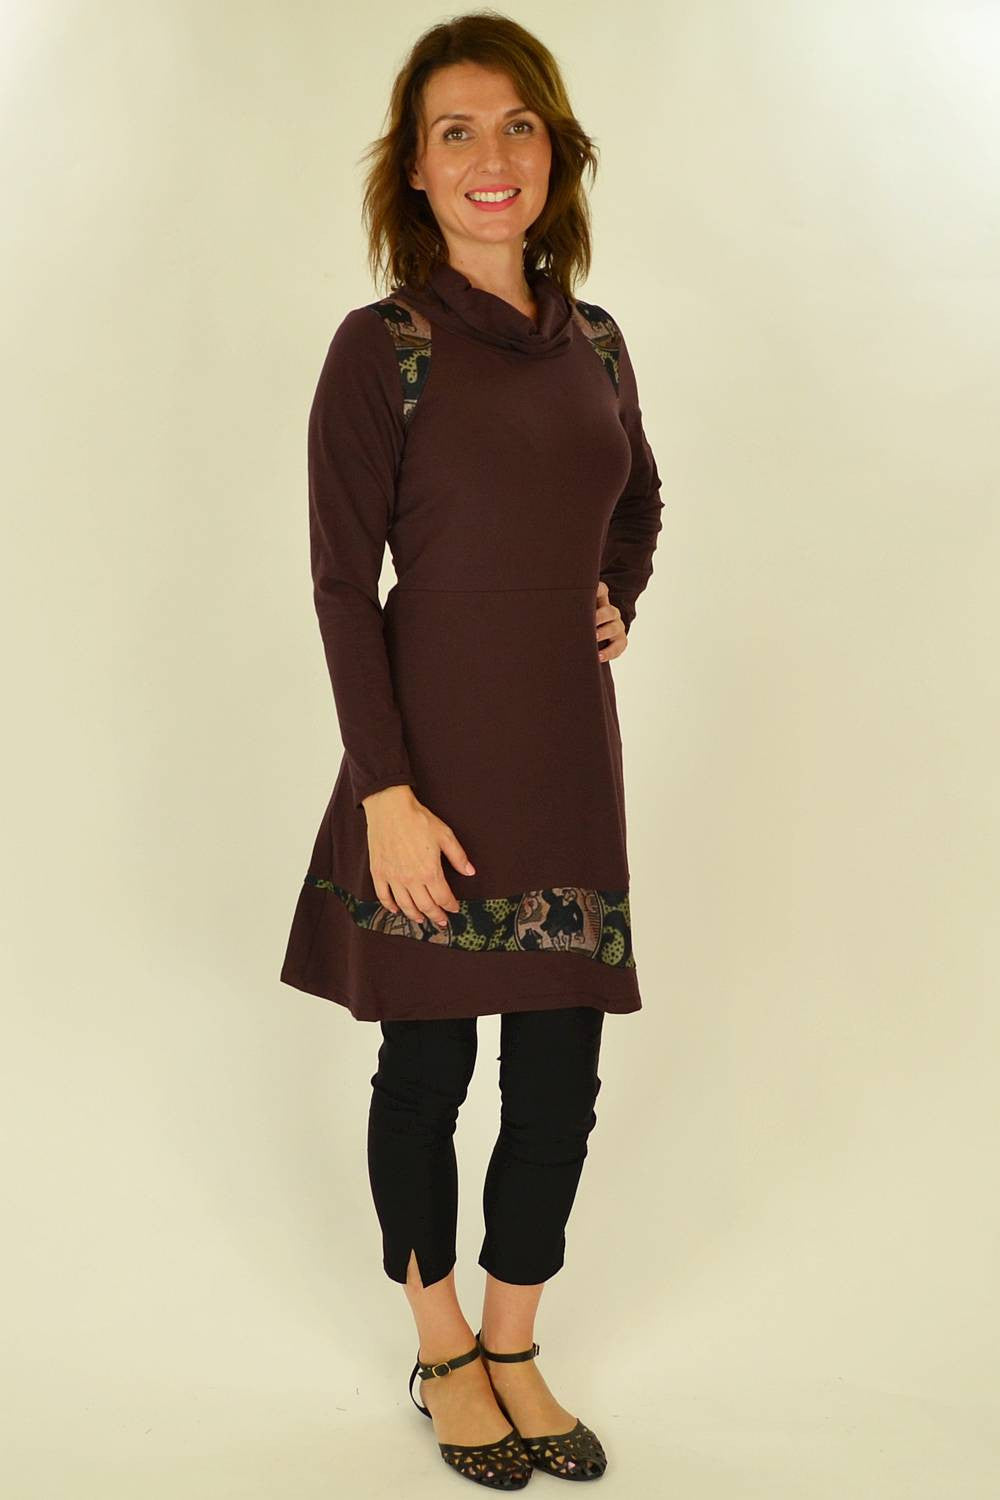 Holmes Fallon Maroon Sail Away Tunic - at I Love Tunics @ www.ilovetunics.com = Number One! Tunics Destination